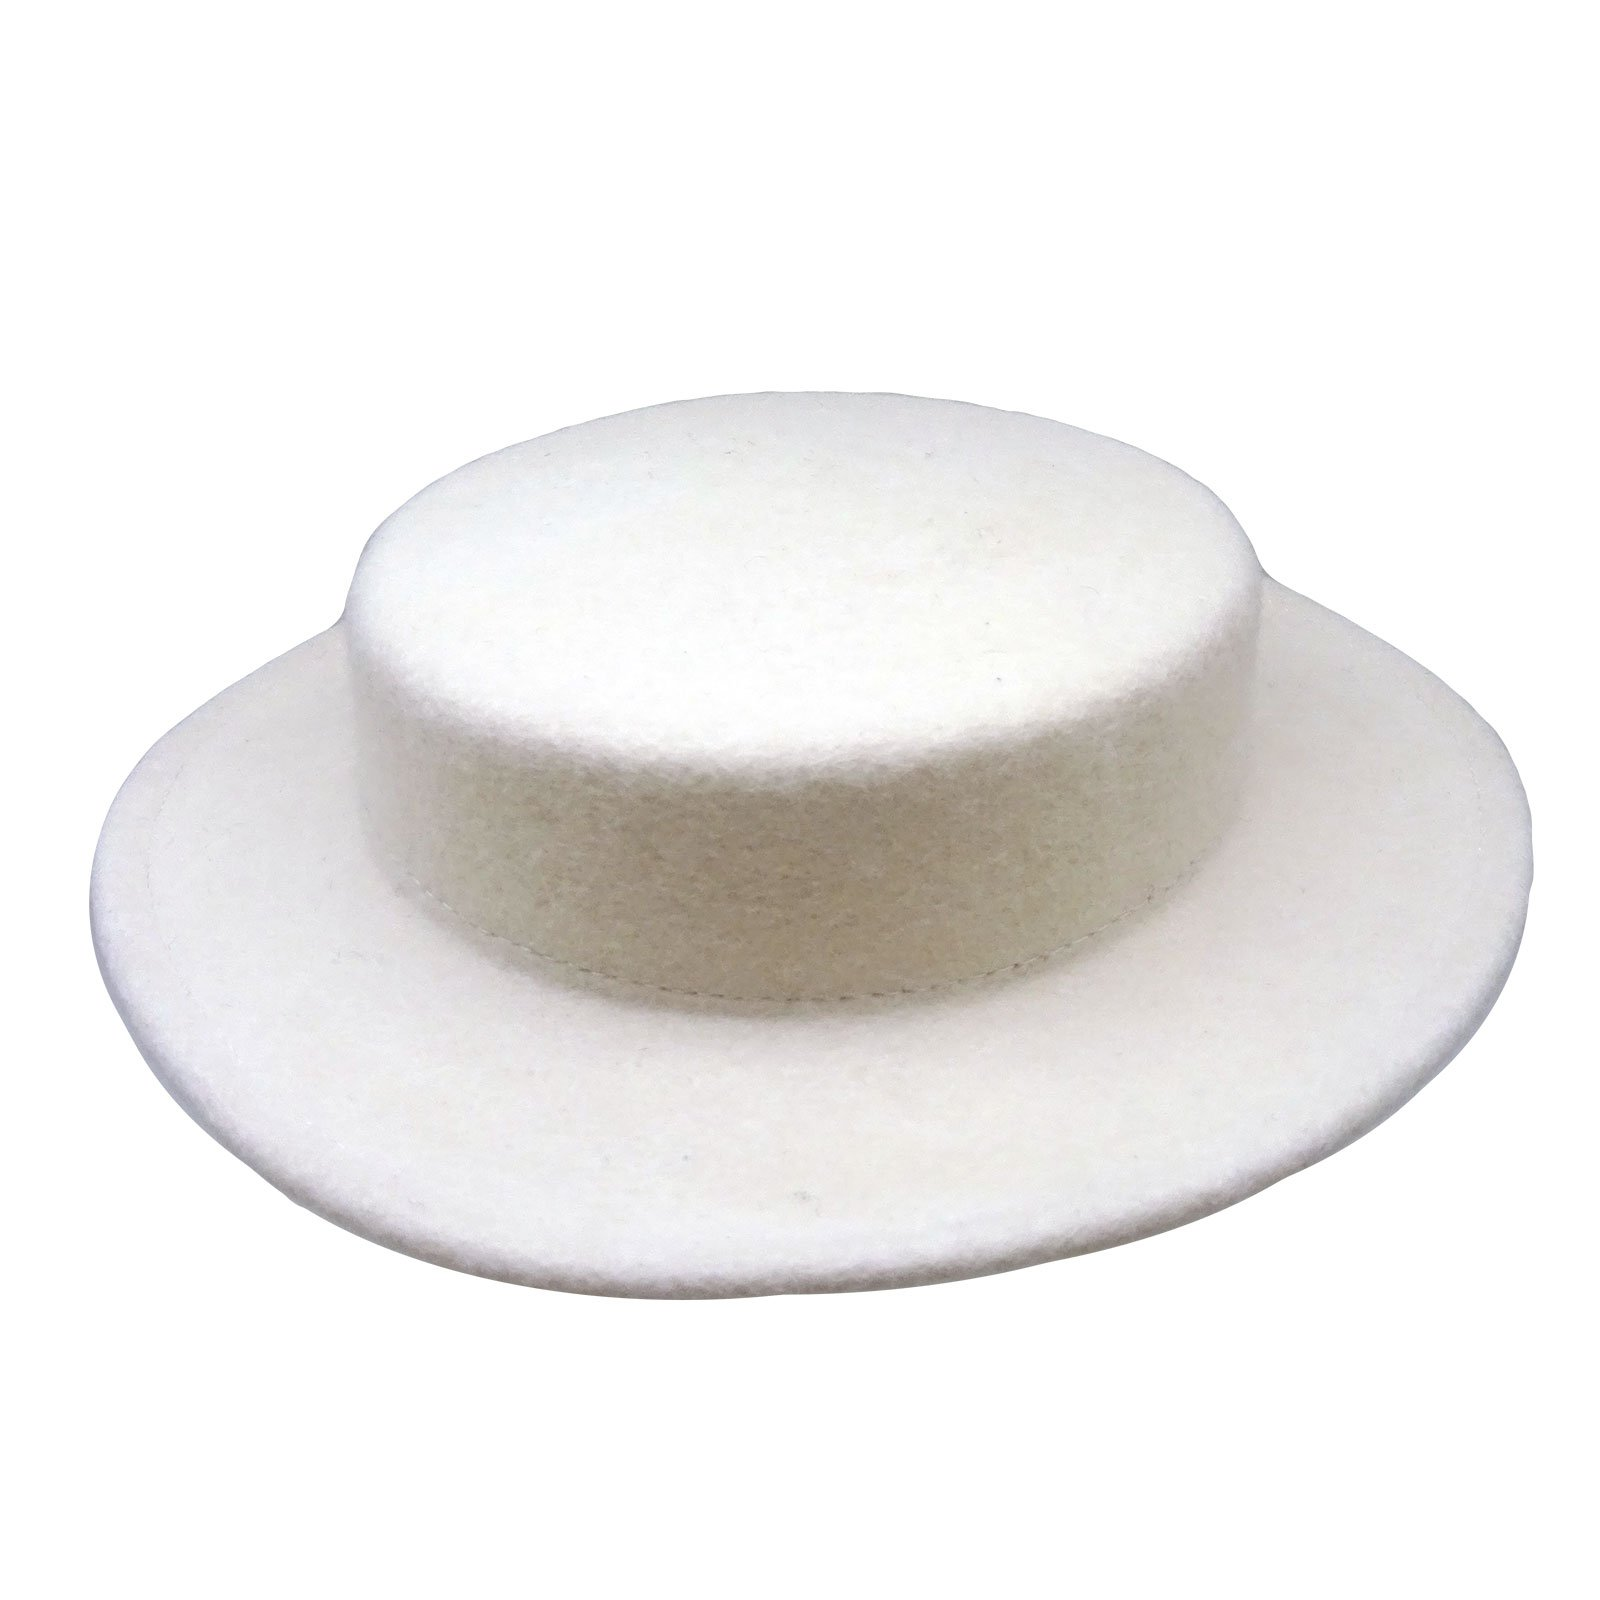 HATsanity Women's Trendy Wool Felt Mini Boater Hat Style Fascinator Ivory